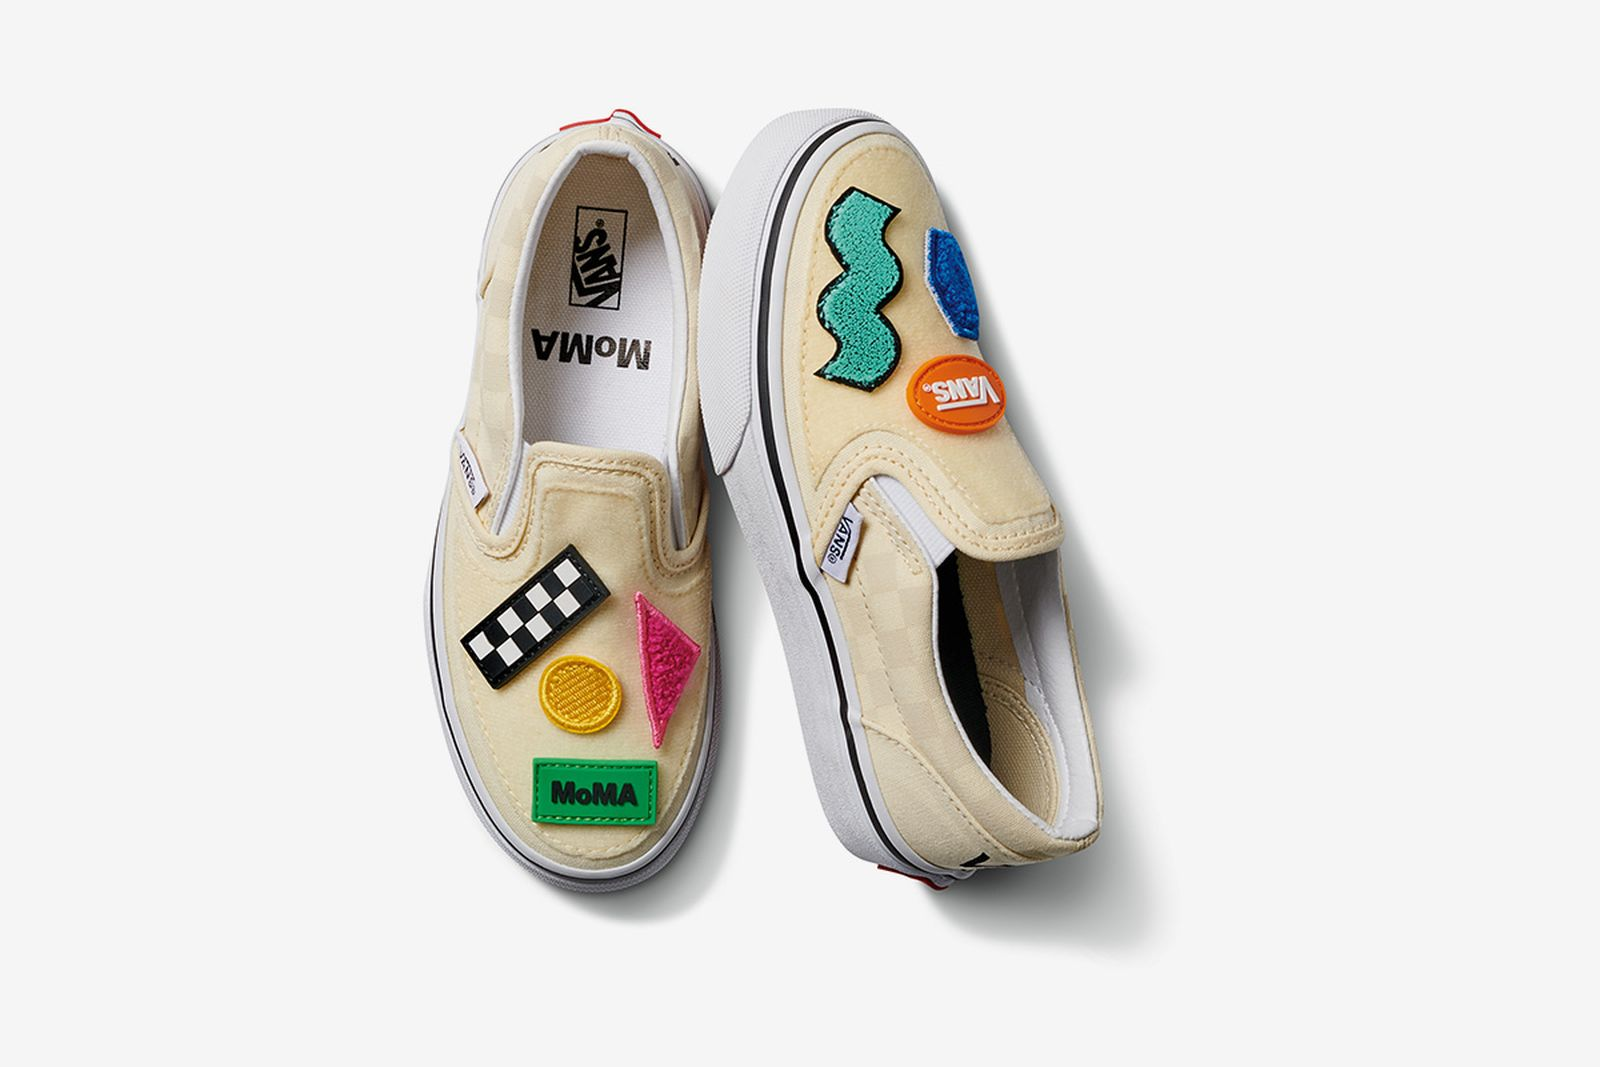 vans-moma-fall-2020-release-date-price-1-05